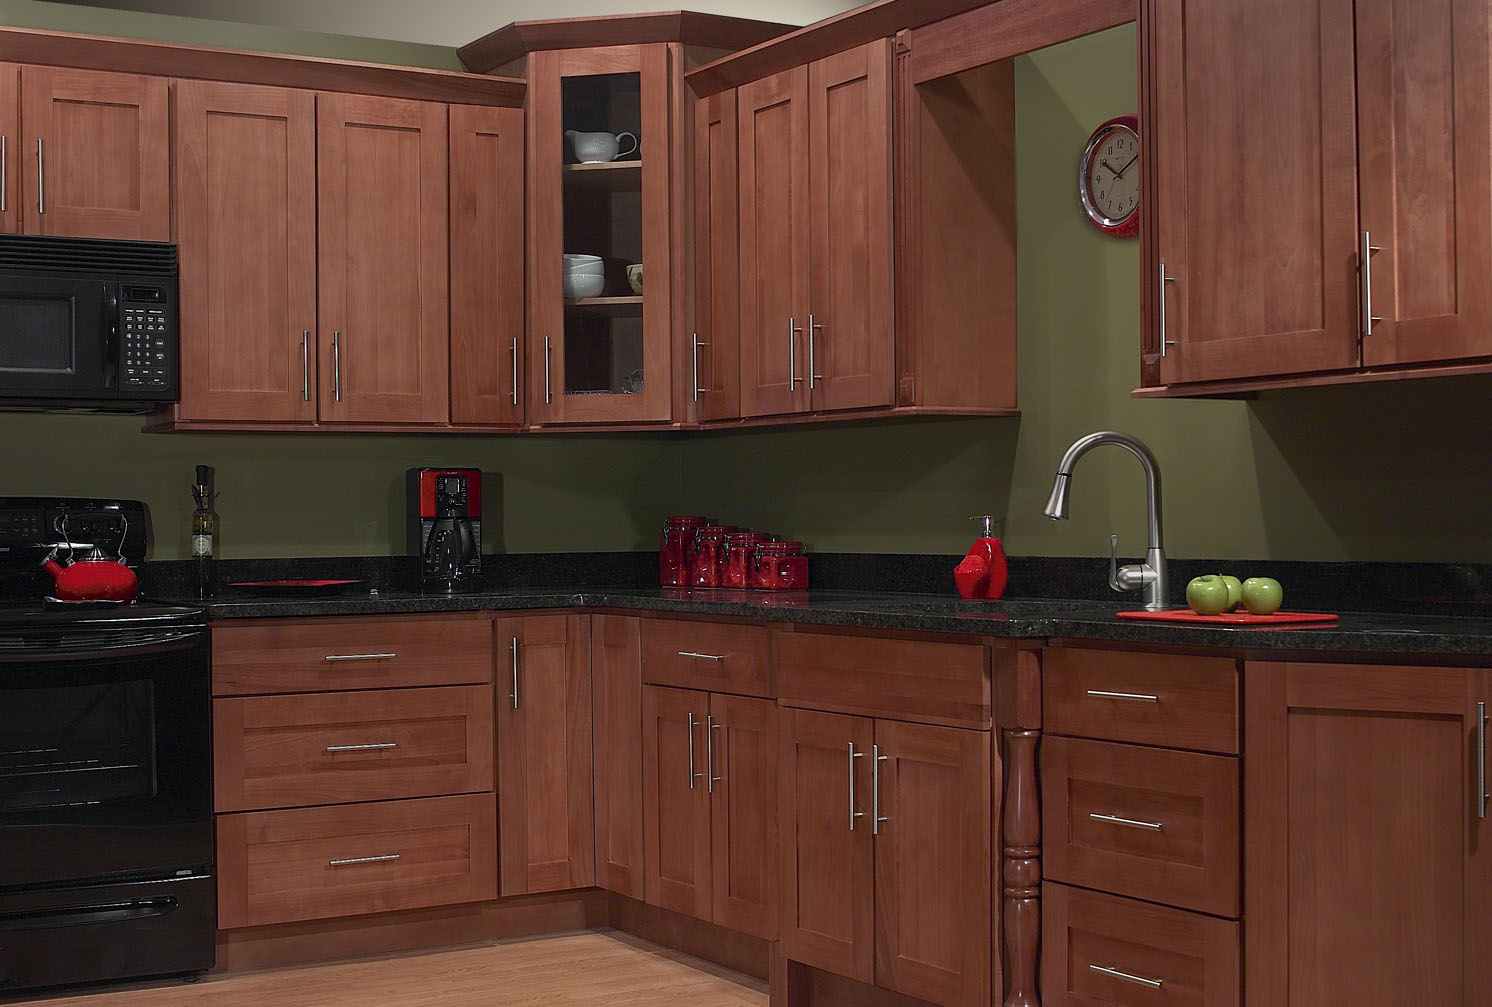 marvelous Kitchen Cabinets Assemble Yourself #1: Sturbridge Kitchen Cabinets